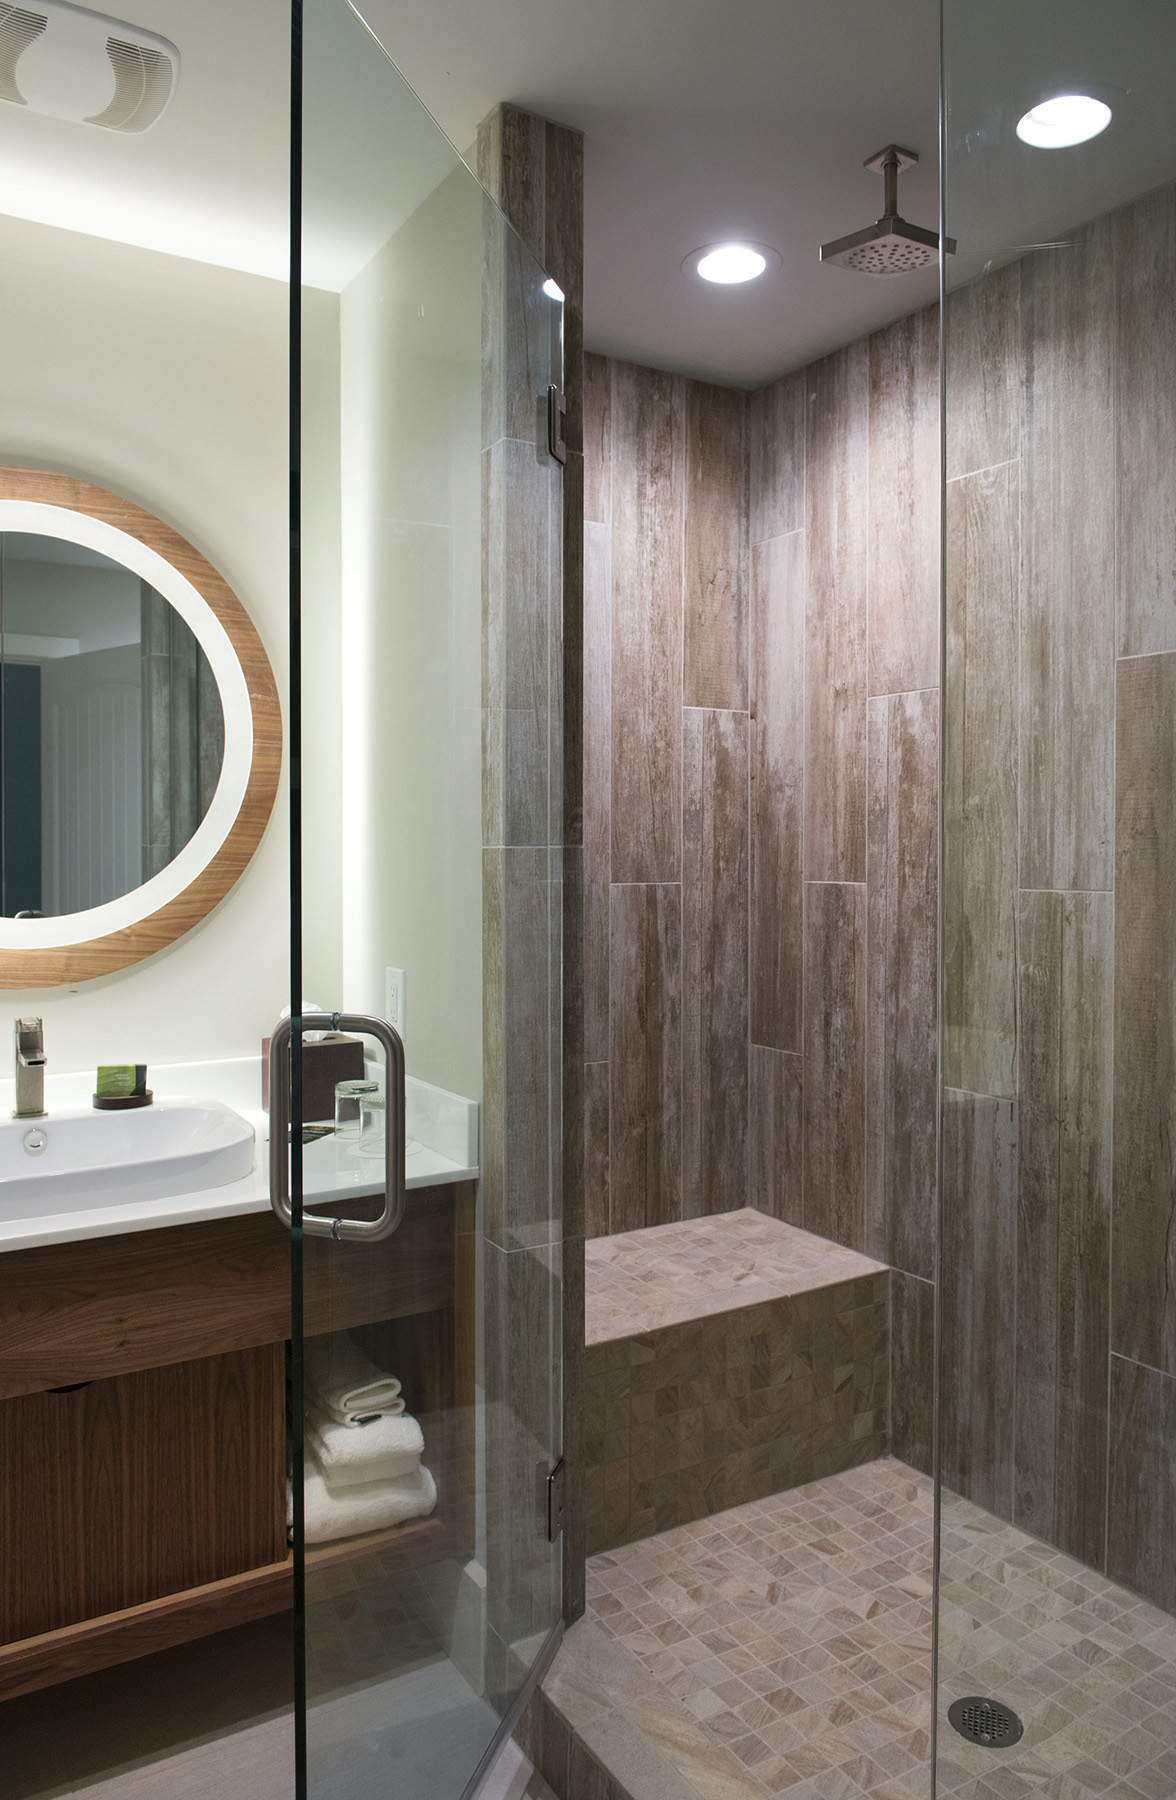 Master Bathroom at Margaritaville Island Hotel, in Pigeon Forge, TN, Designed by Design Poole, Inc in Winter Park Florida